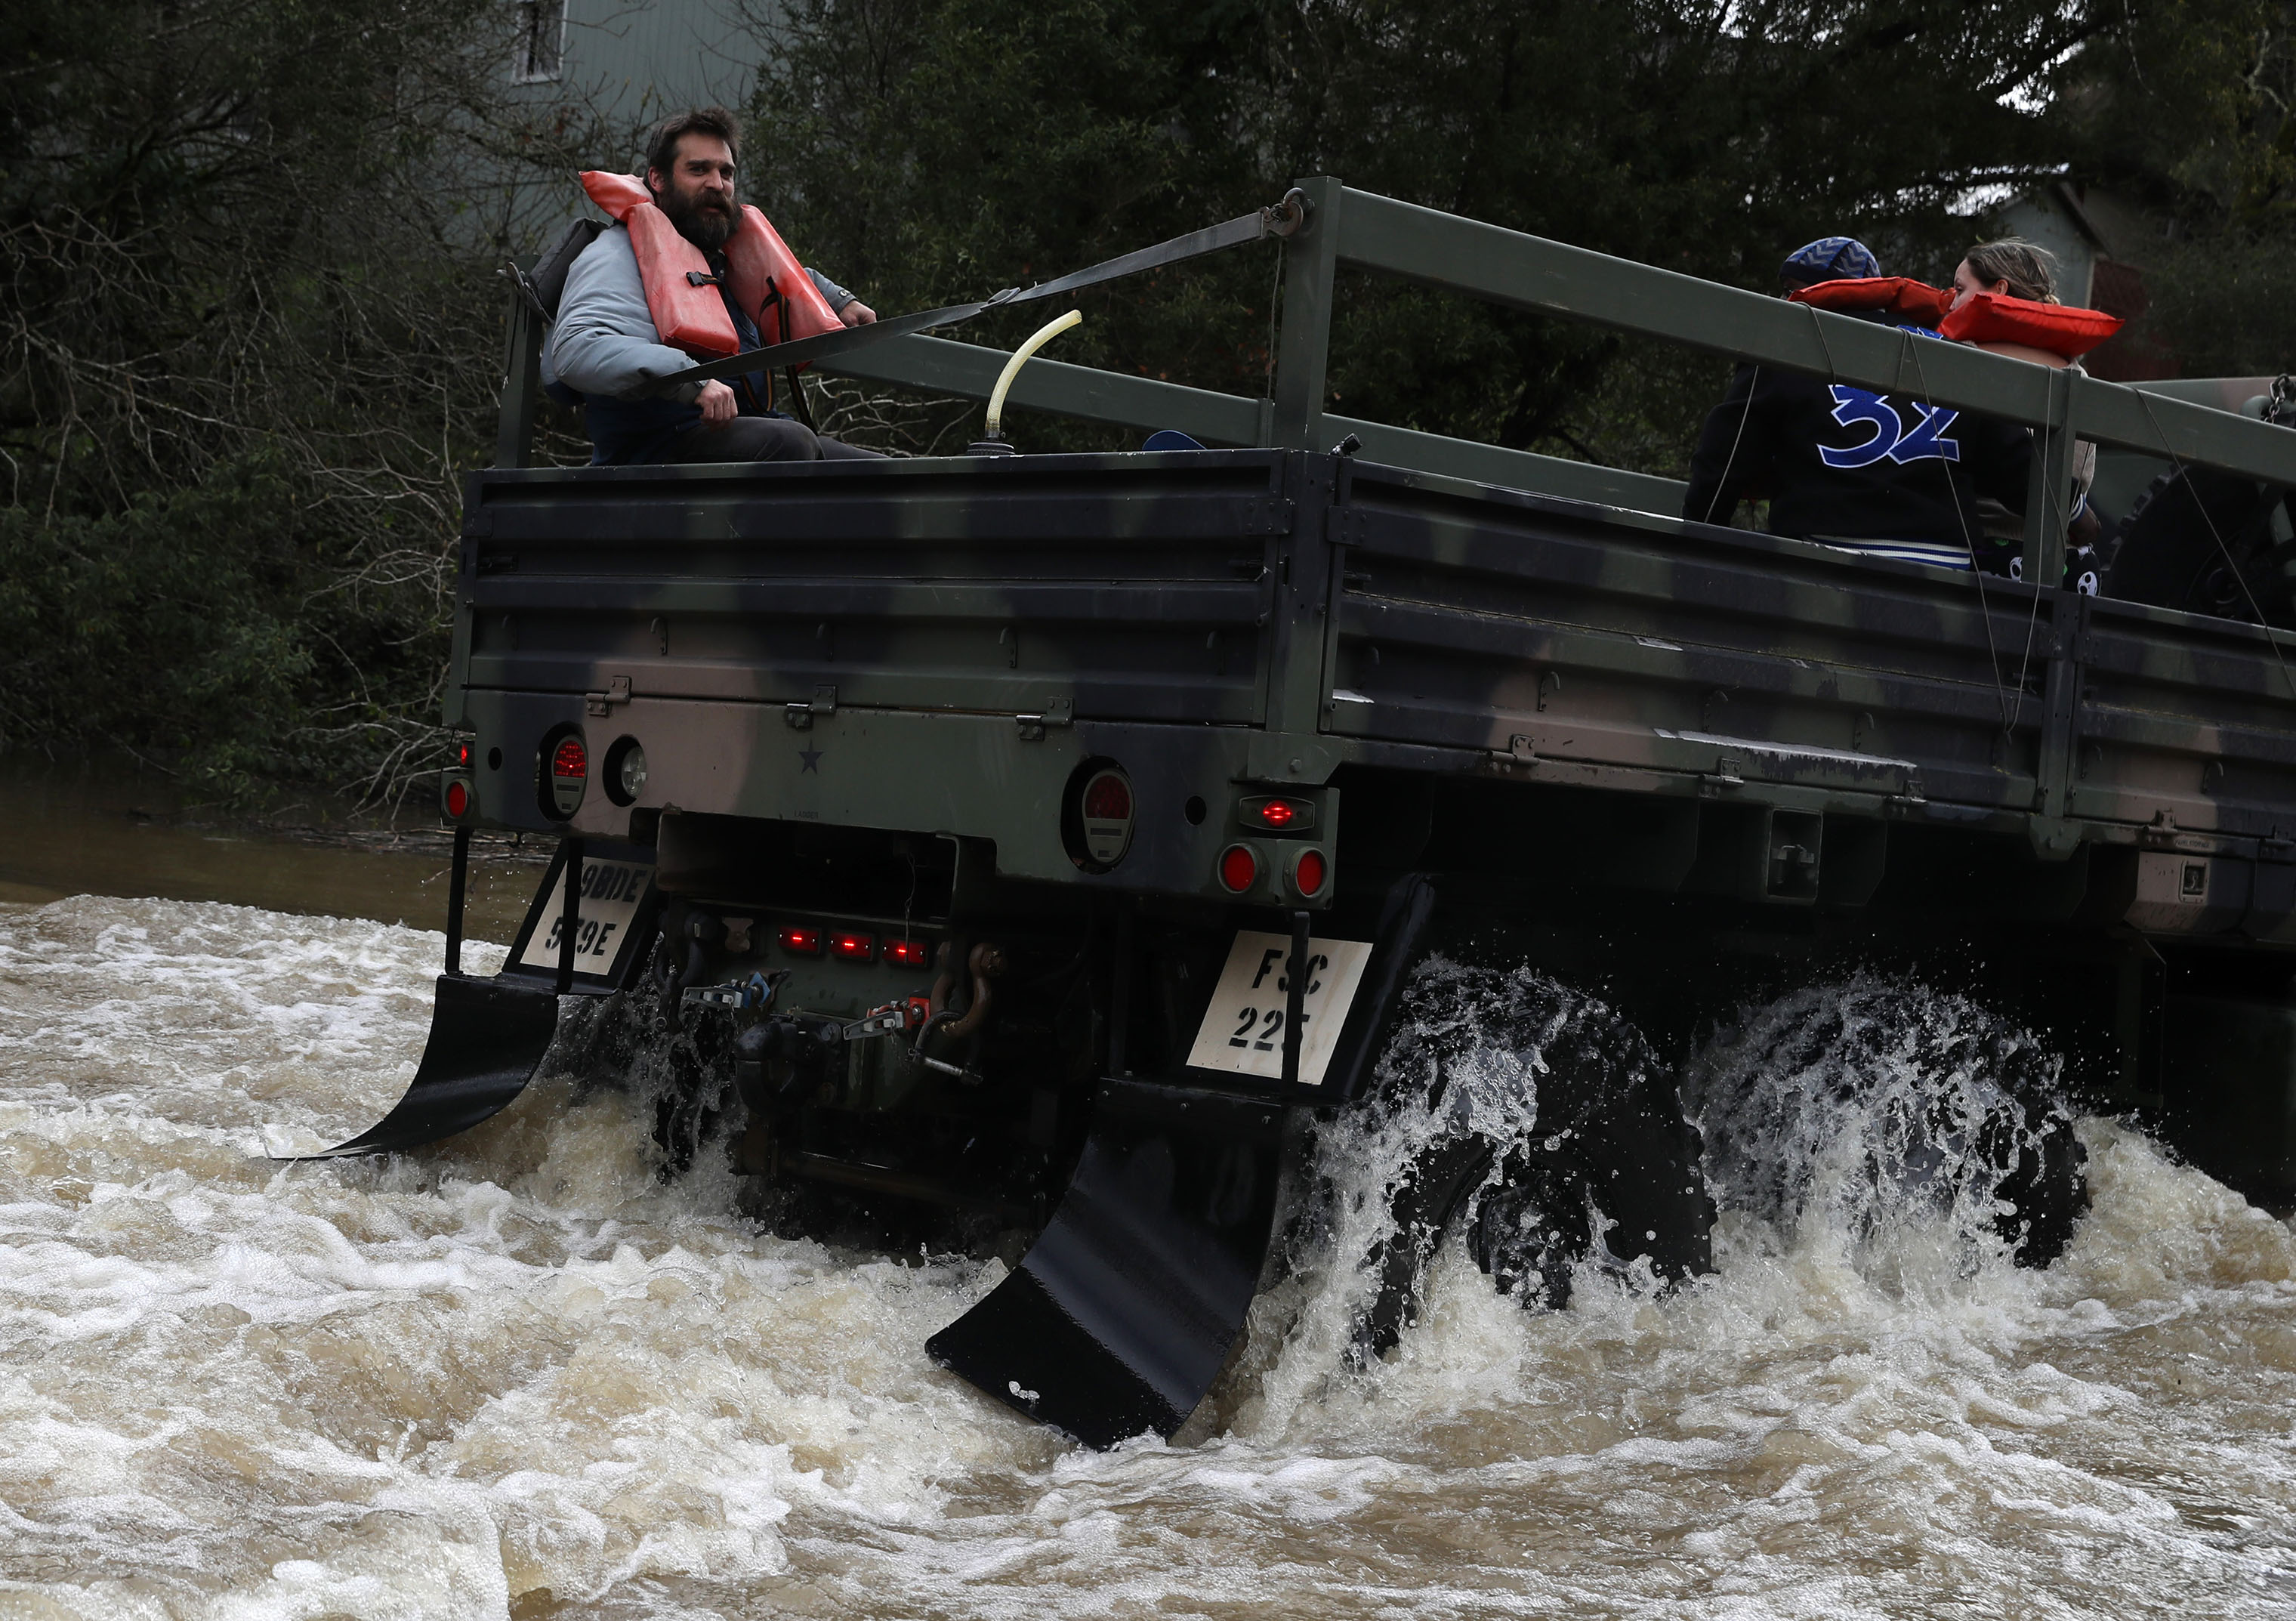 Rescue workers evacuate residents on a truck as they drive through a flooded neighborhood on Feb. 27, 2019 in Forestville, California.